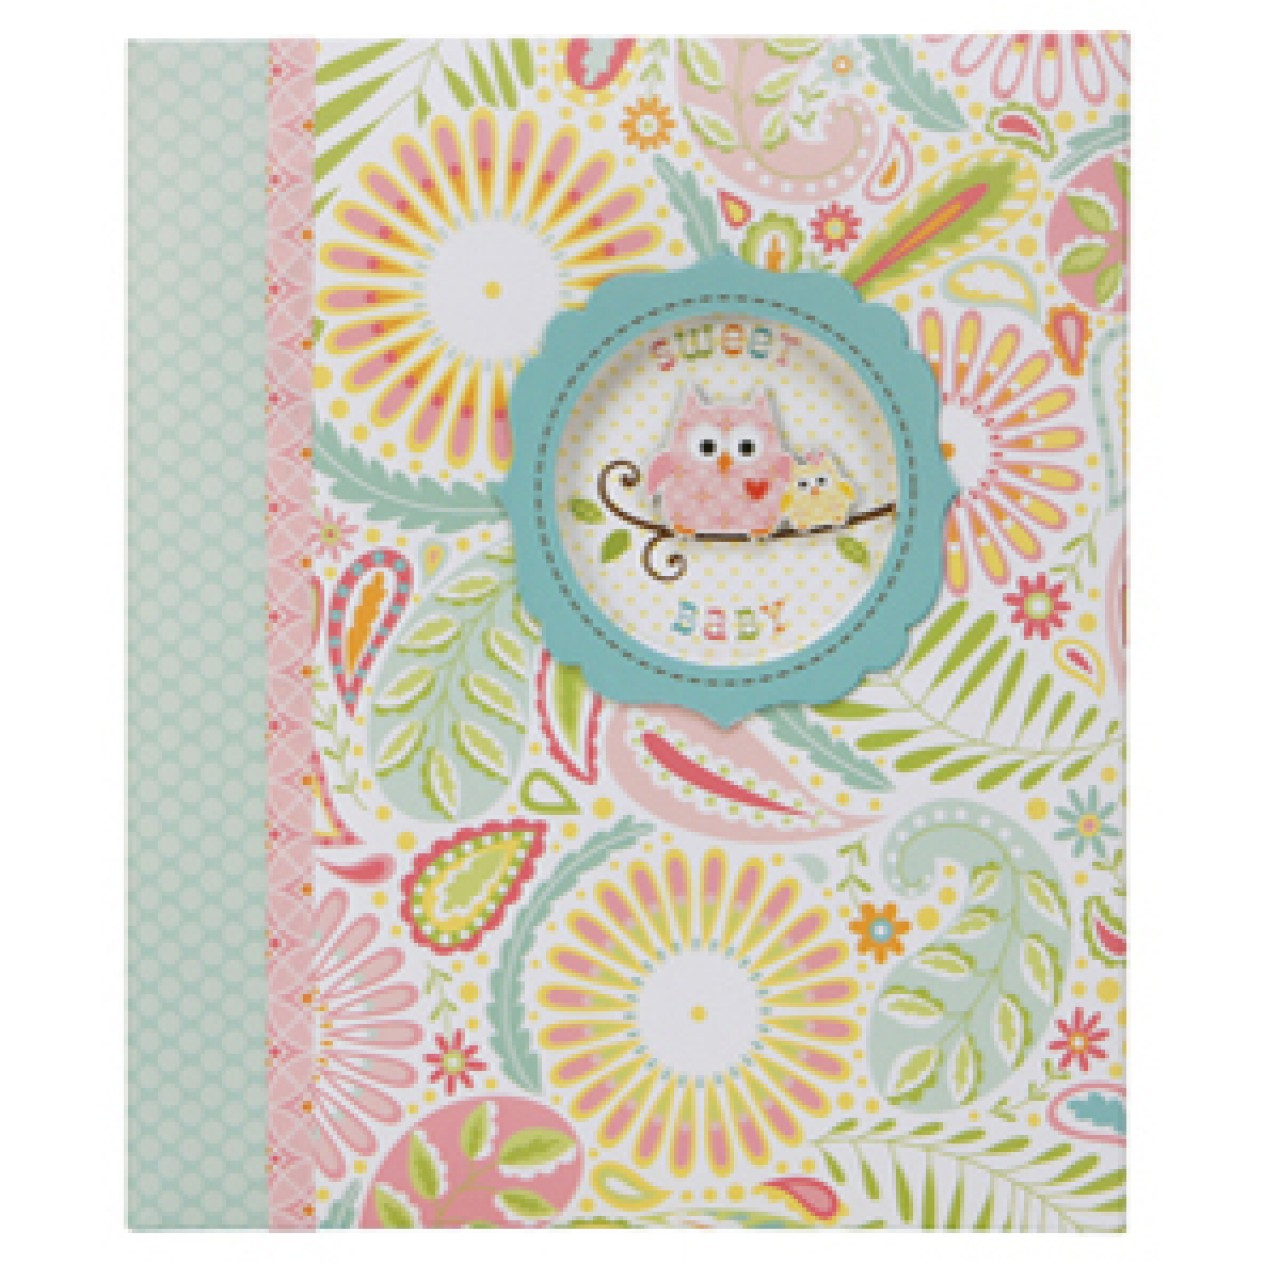 cr gibson baby memory books loose leaf new mother new baby store